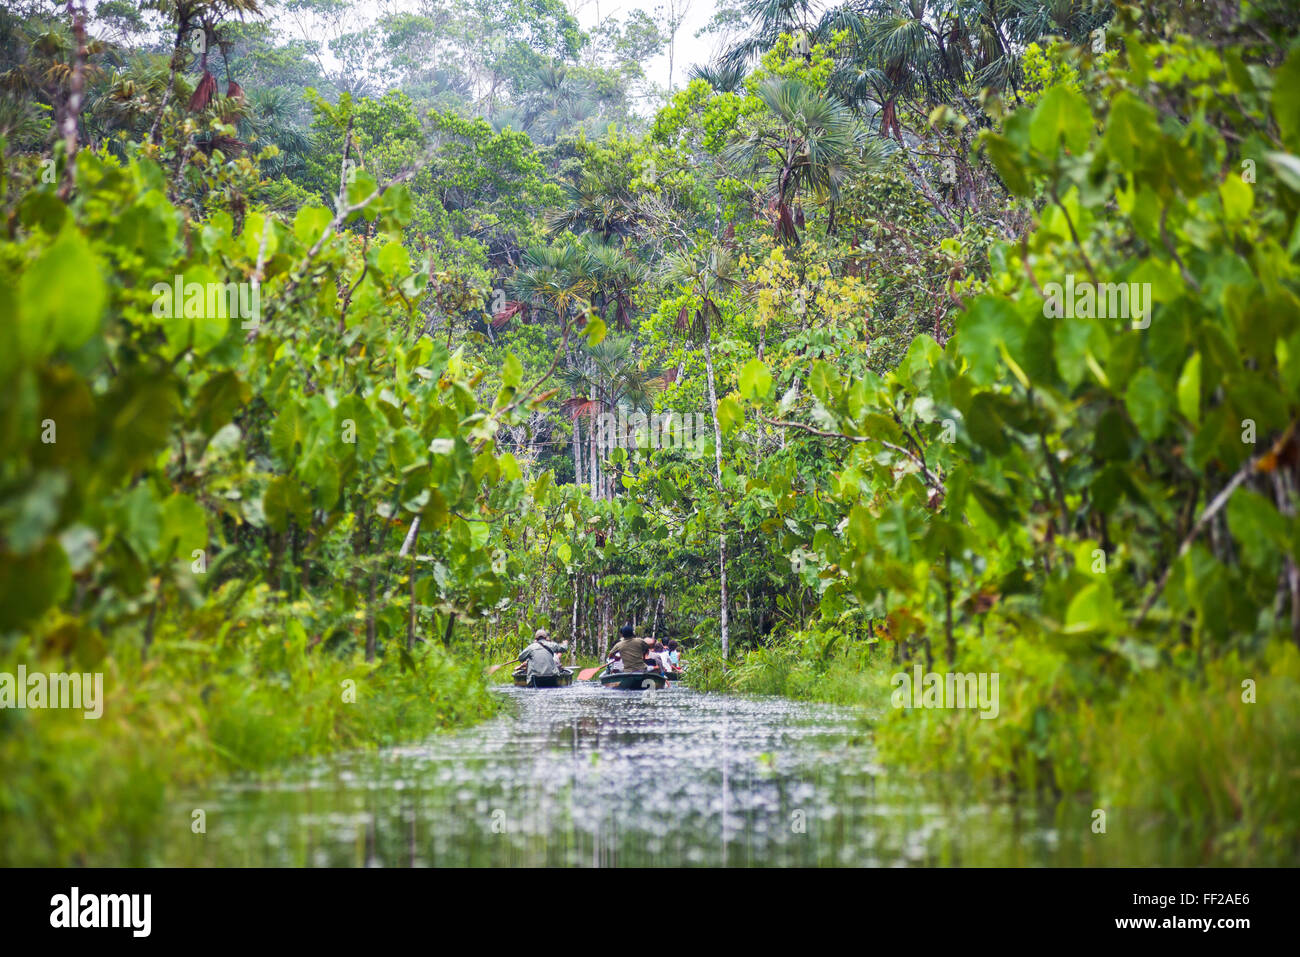 Amazon Rainforest dugout canoe ride, Sacha RModge, Coca, Ecuador, South America - Stock Image